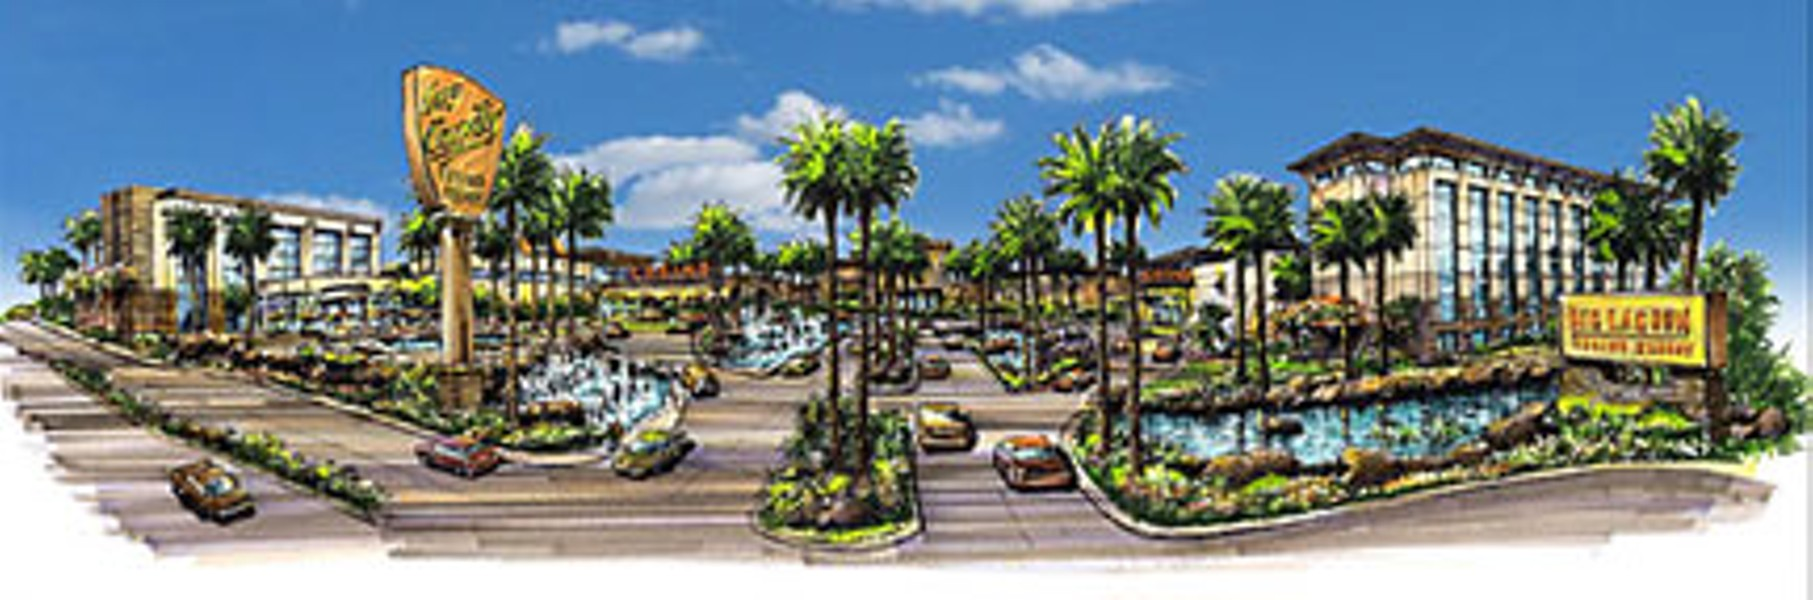 Desert oasis? The Big Lagoon Rancheria sure hopes so.  Drawing courtesy Big Lagoon Rancheria.